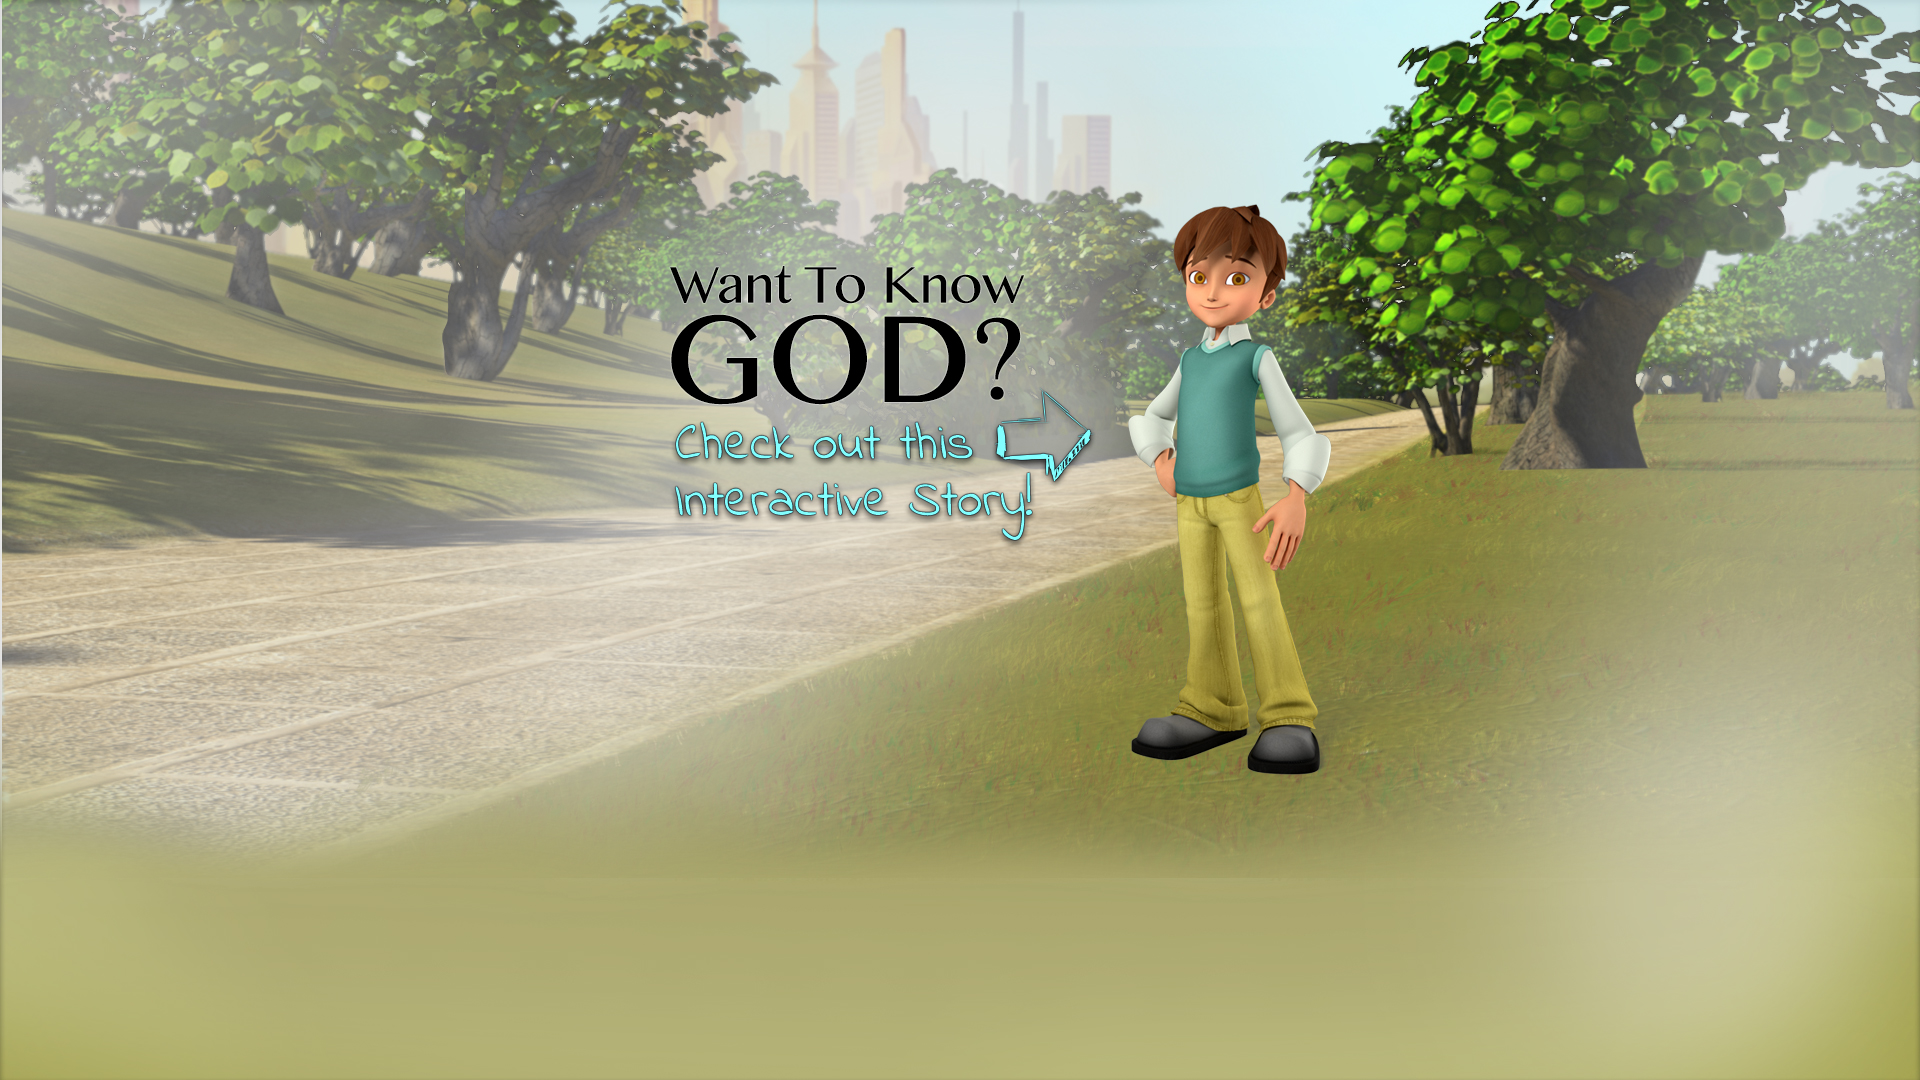 superbook kids website free online games bible based internet